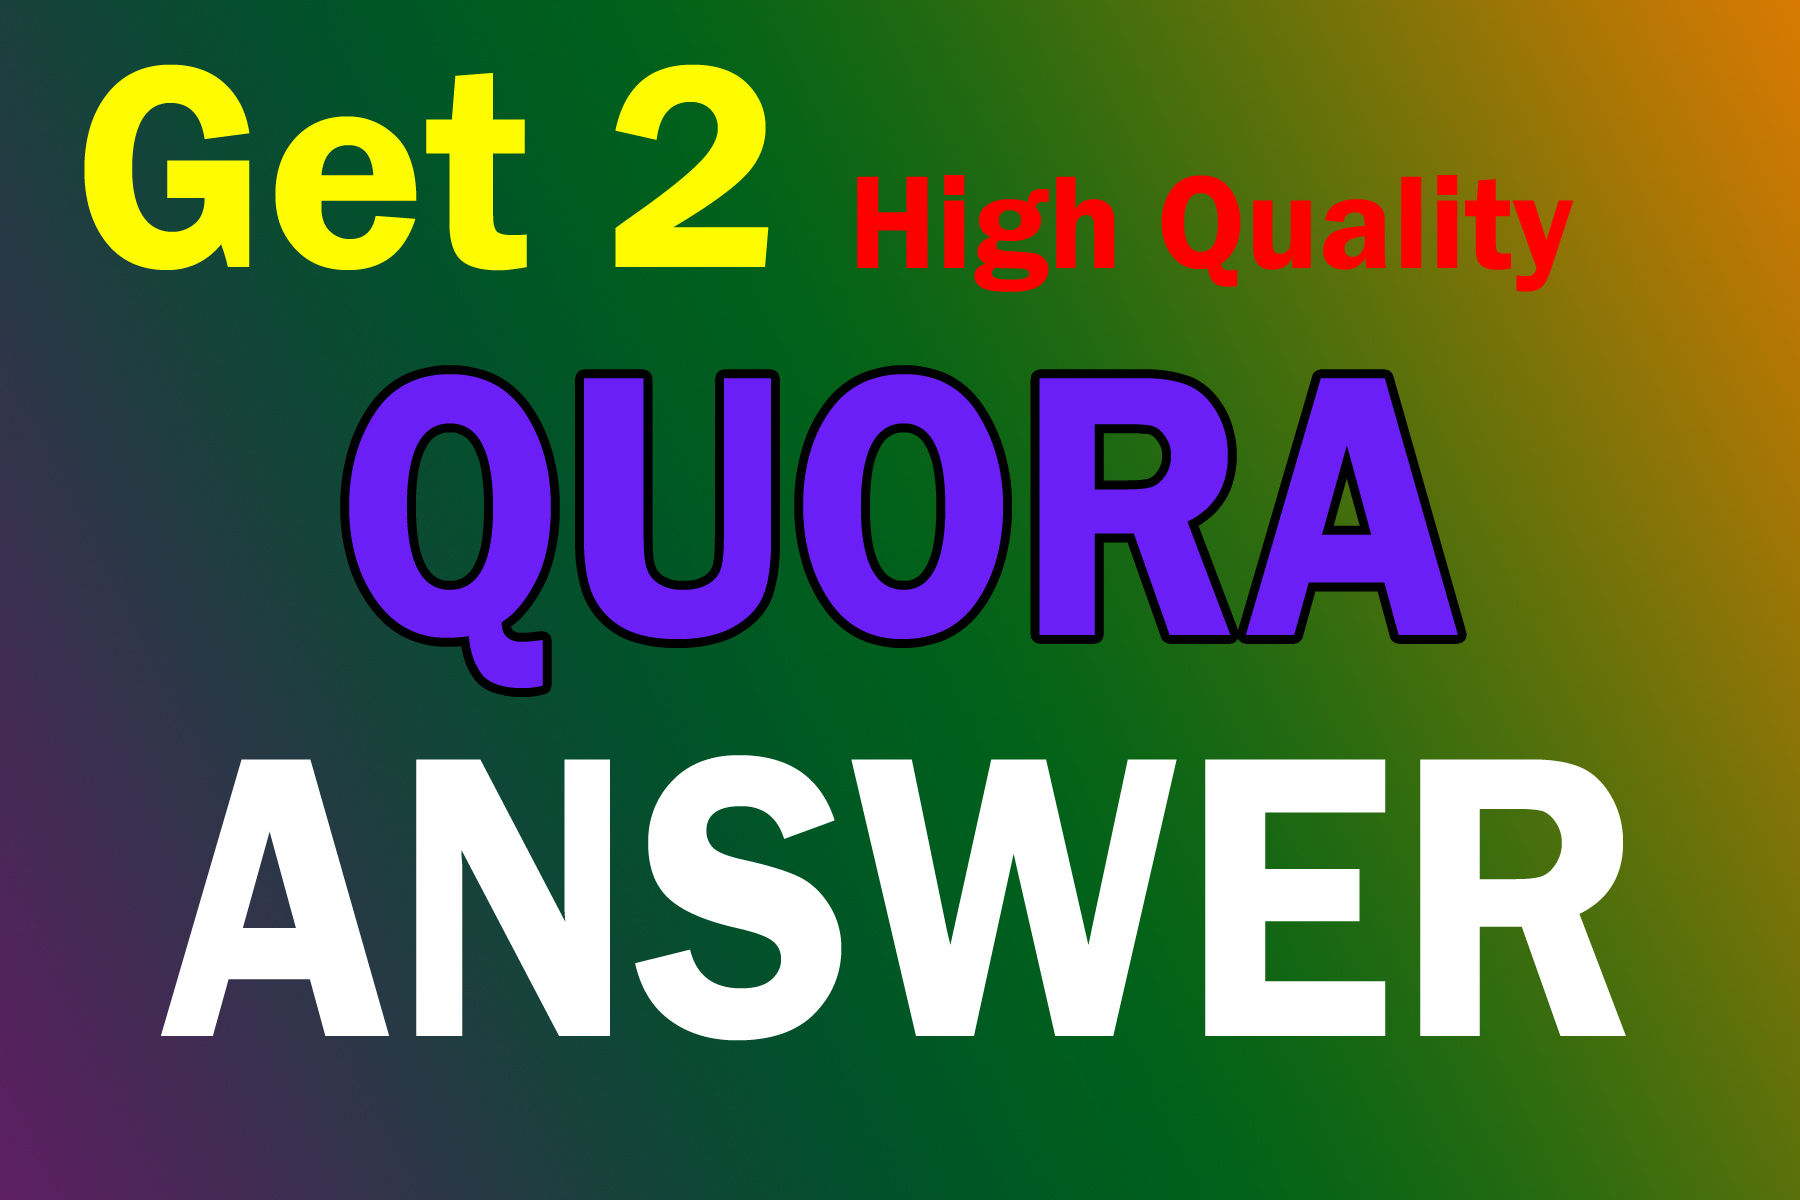 Get High Quality 2 Quora Answer Backlink for Your Website